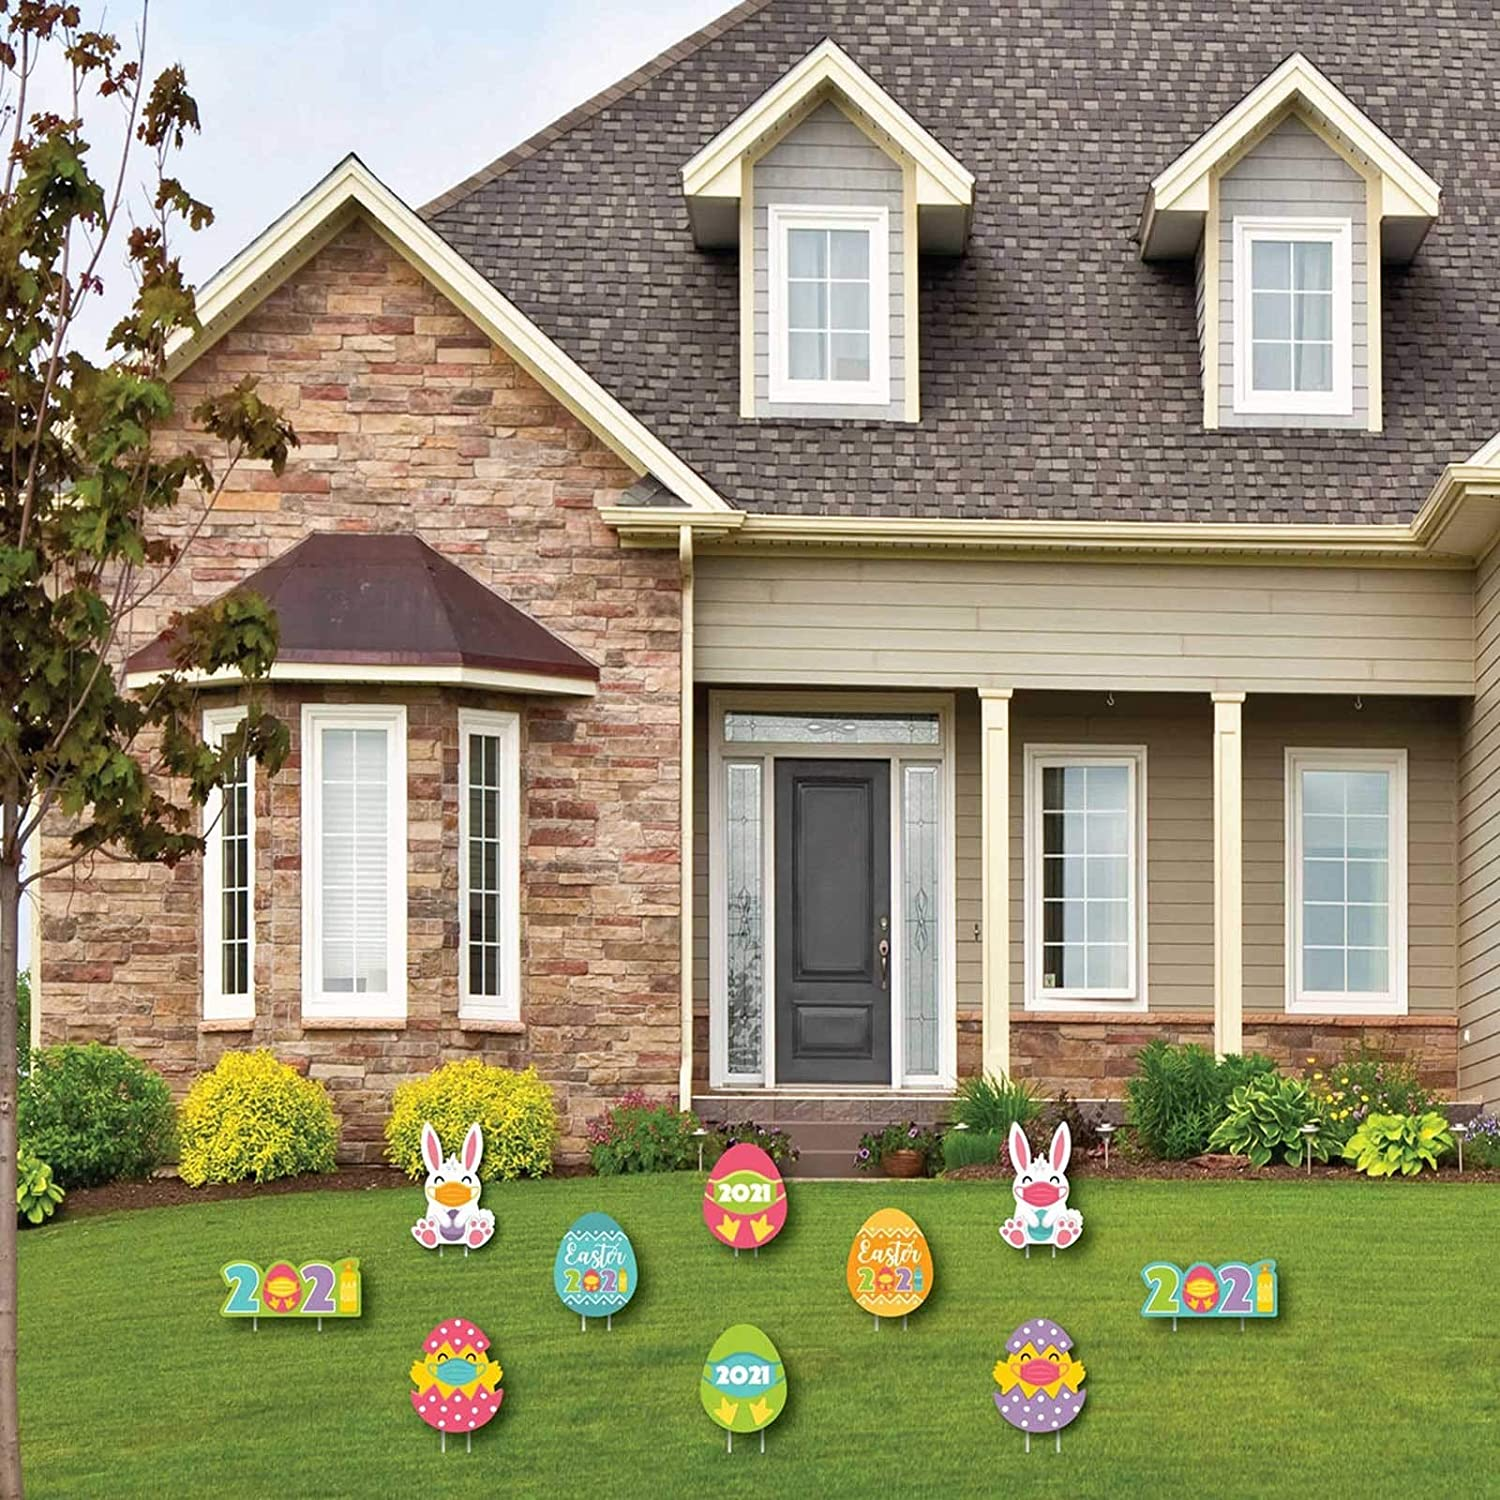 Outdoor Party Supplies D/écor Props Maxpex 10 Pcs Easter Yard Signs Decorations Outdoor Bunny Rabbit Chick and Eggs Yard Stake Signs Easter Gnomes Lawn Yard Decor Ornaments for Easter Hunt Game